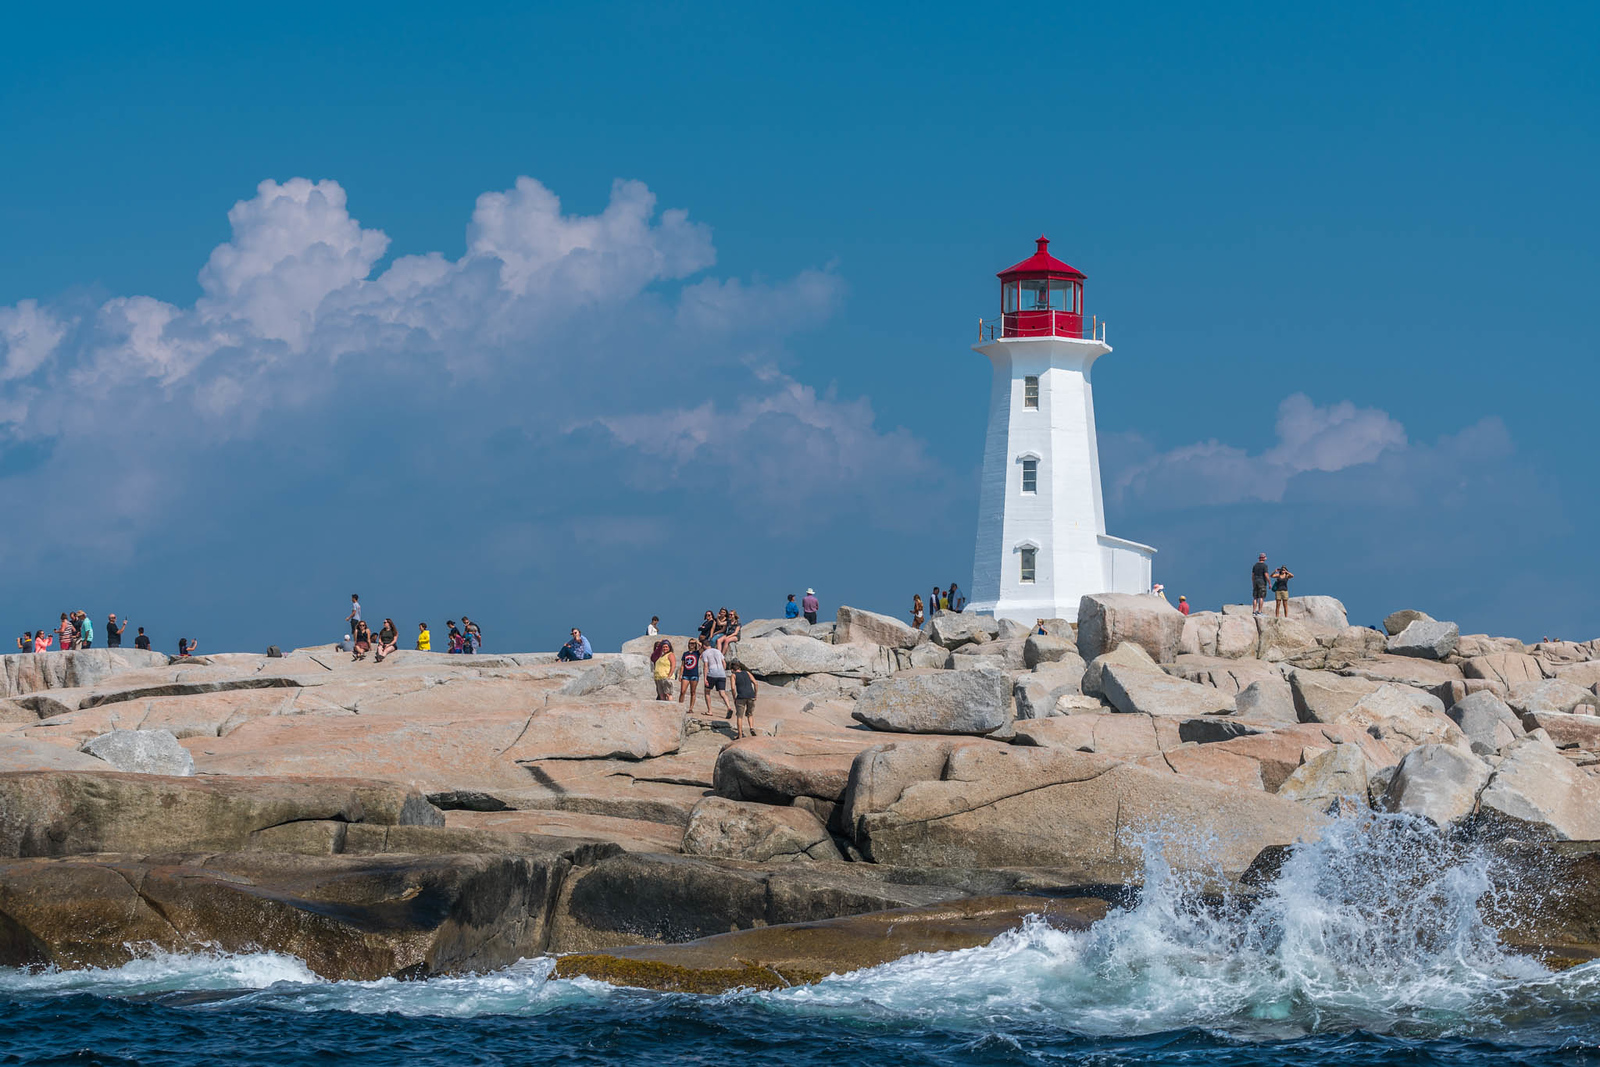 Stay off the Black Rocks at Peggy's Cove!